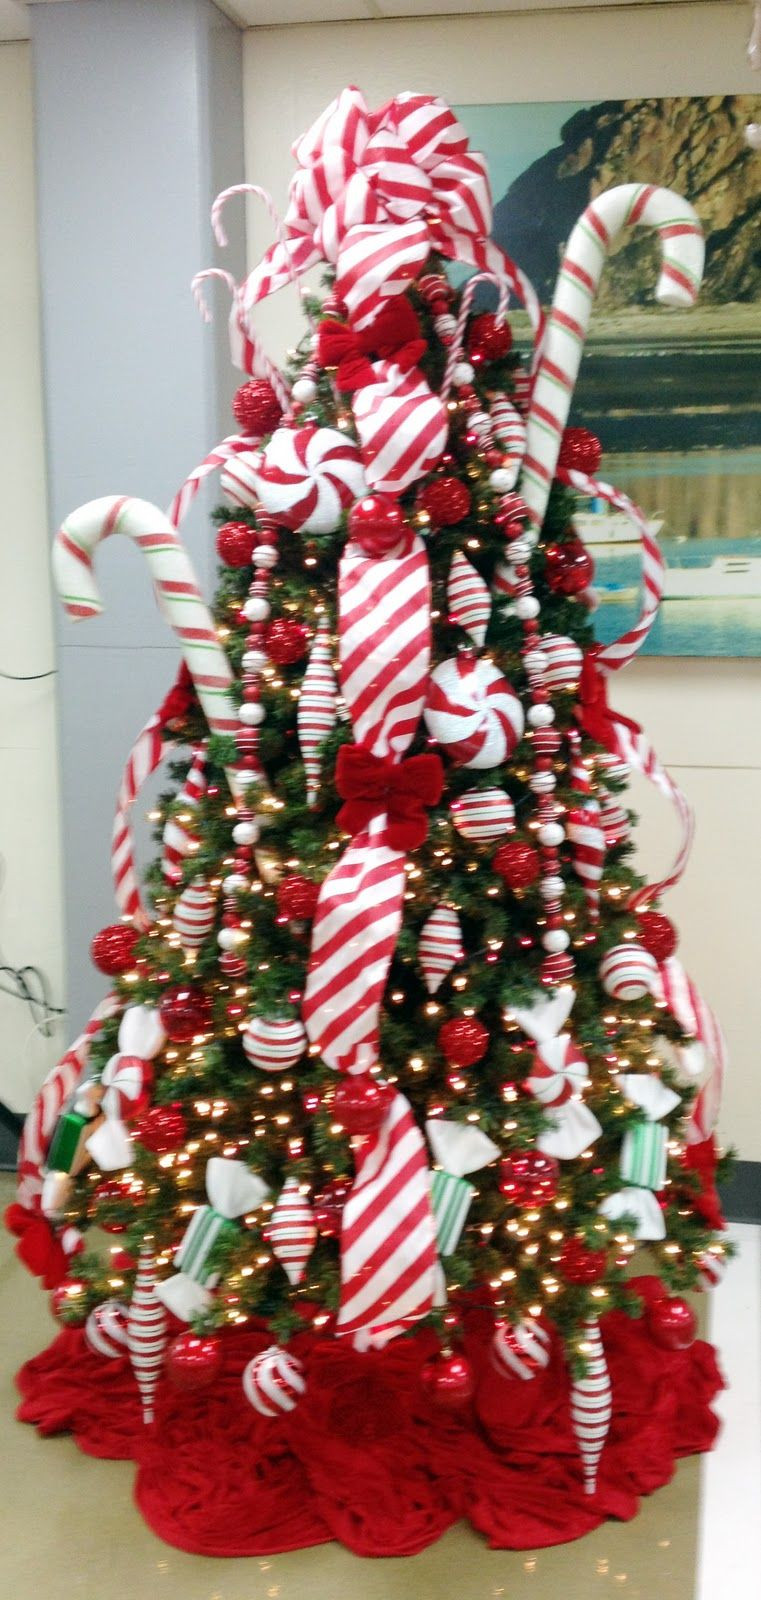 Candy Canes On Christmas Tree  Candy Cane Christmas tree Deck The Halls